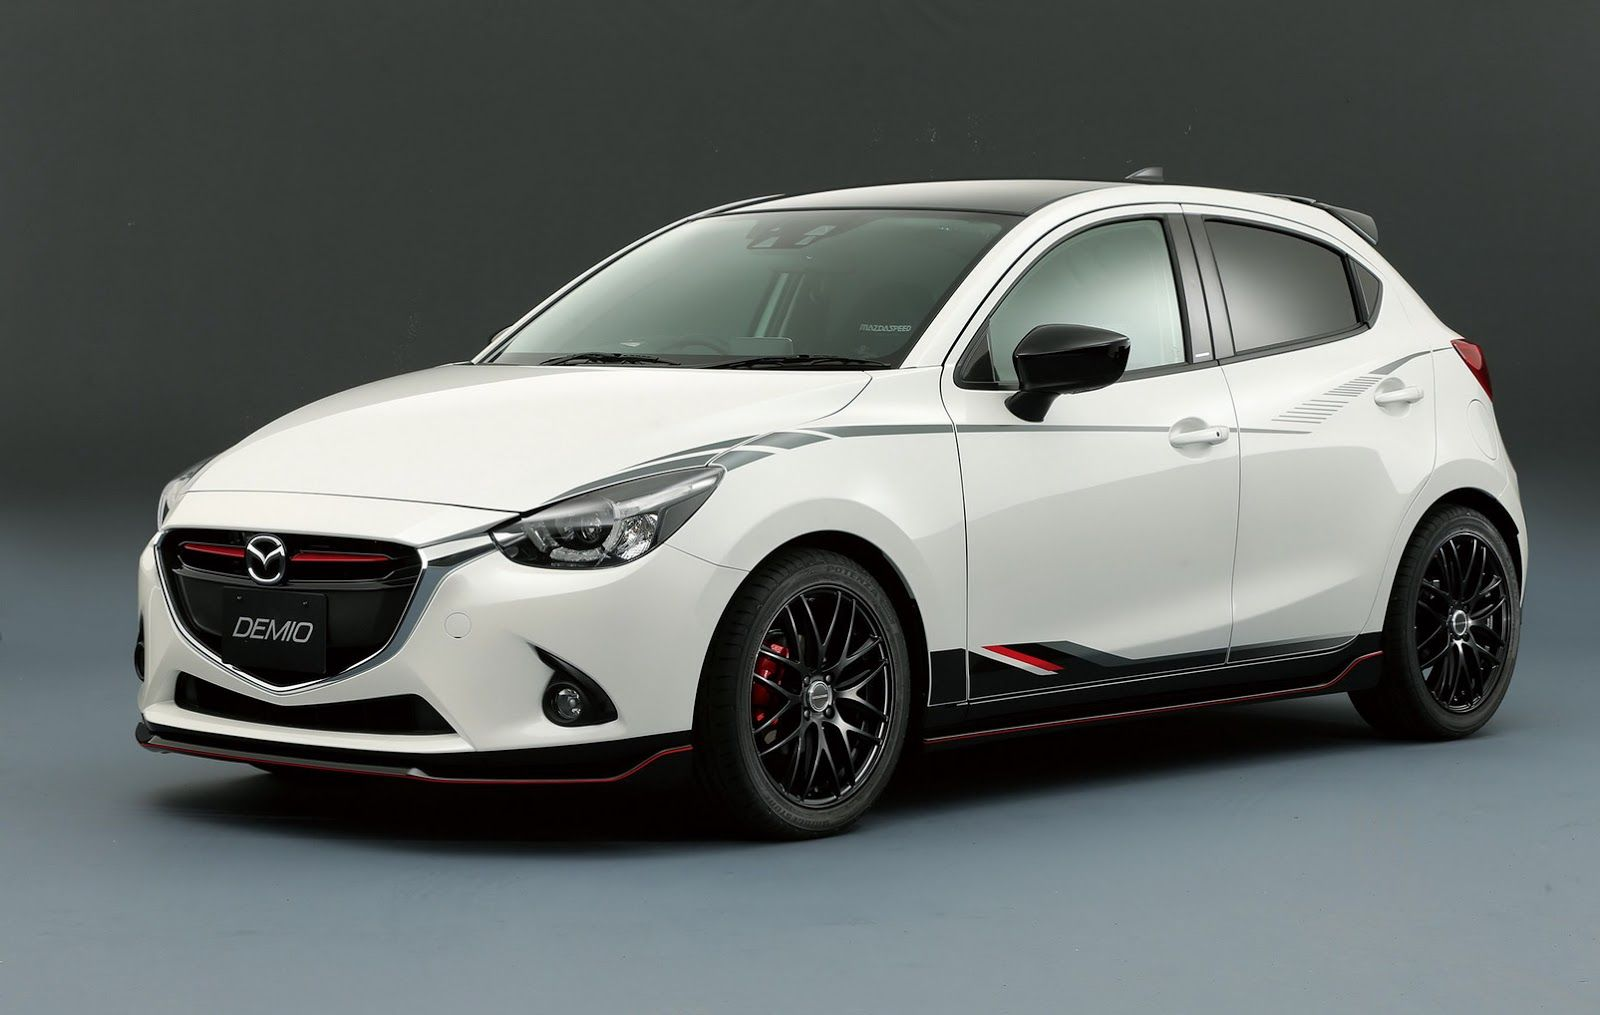 Tuned mazda models revealed ahead of tokyo auto salon demio you remember this from gran turismo